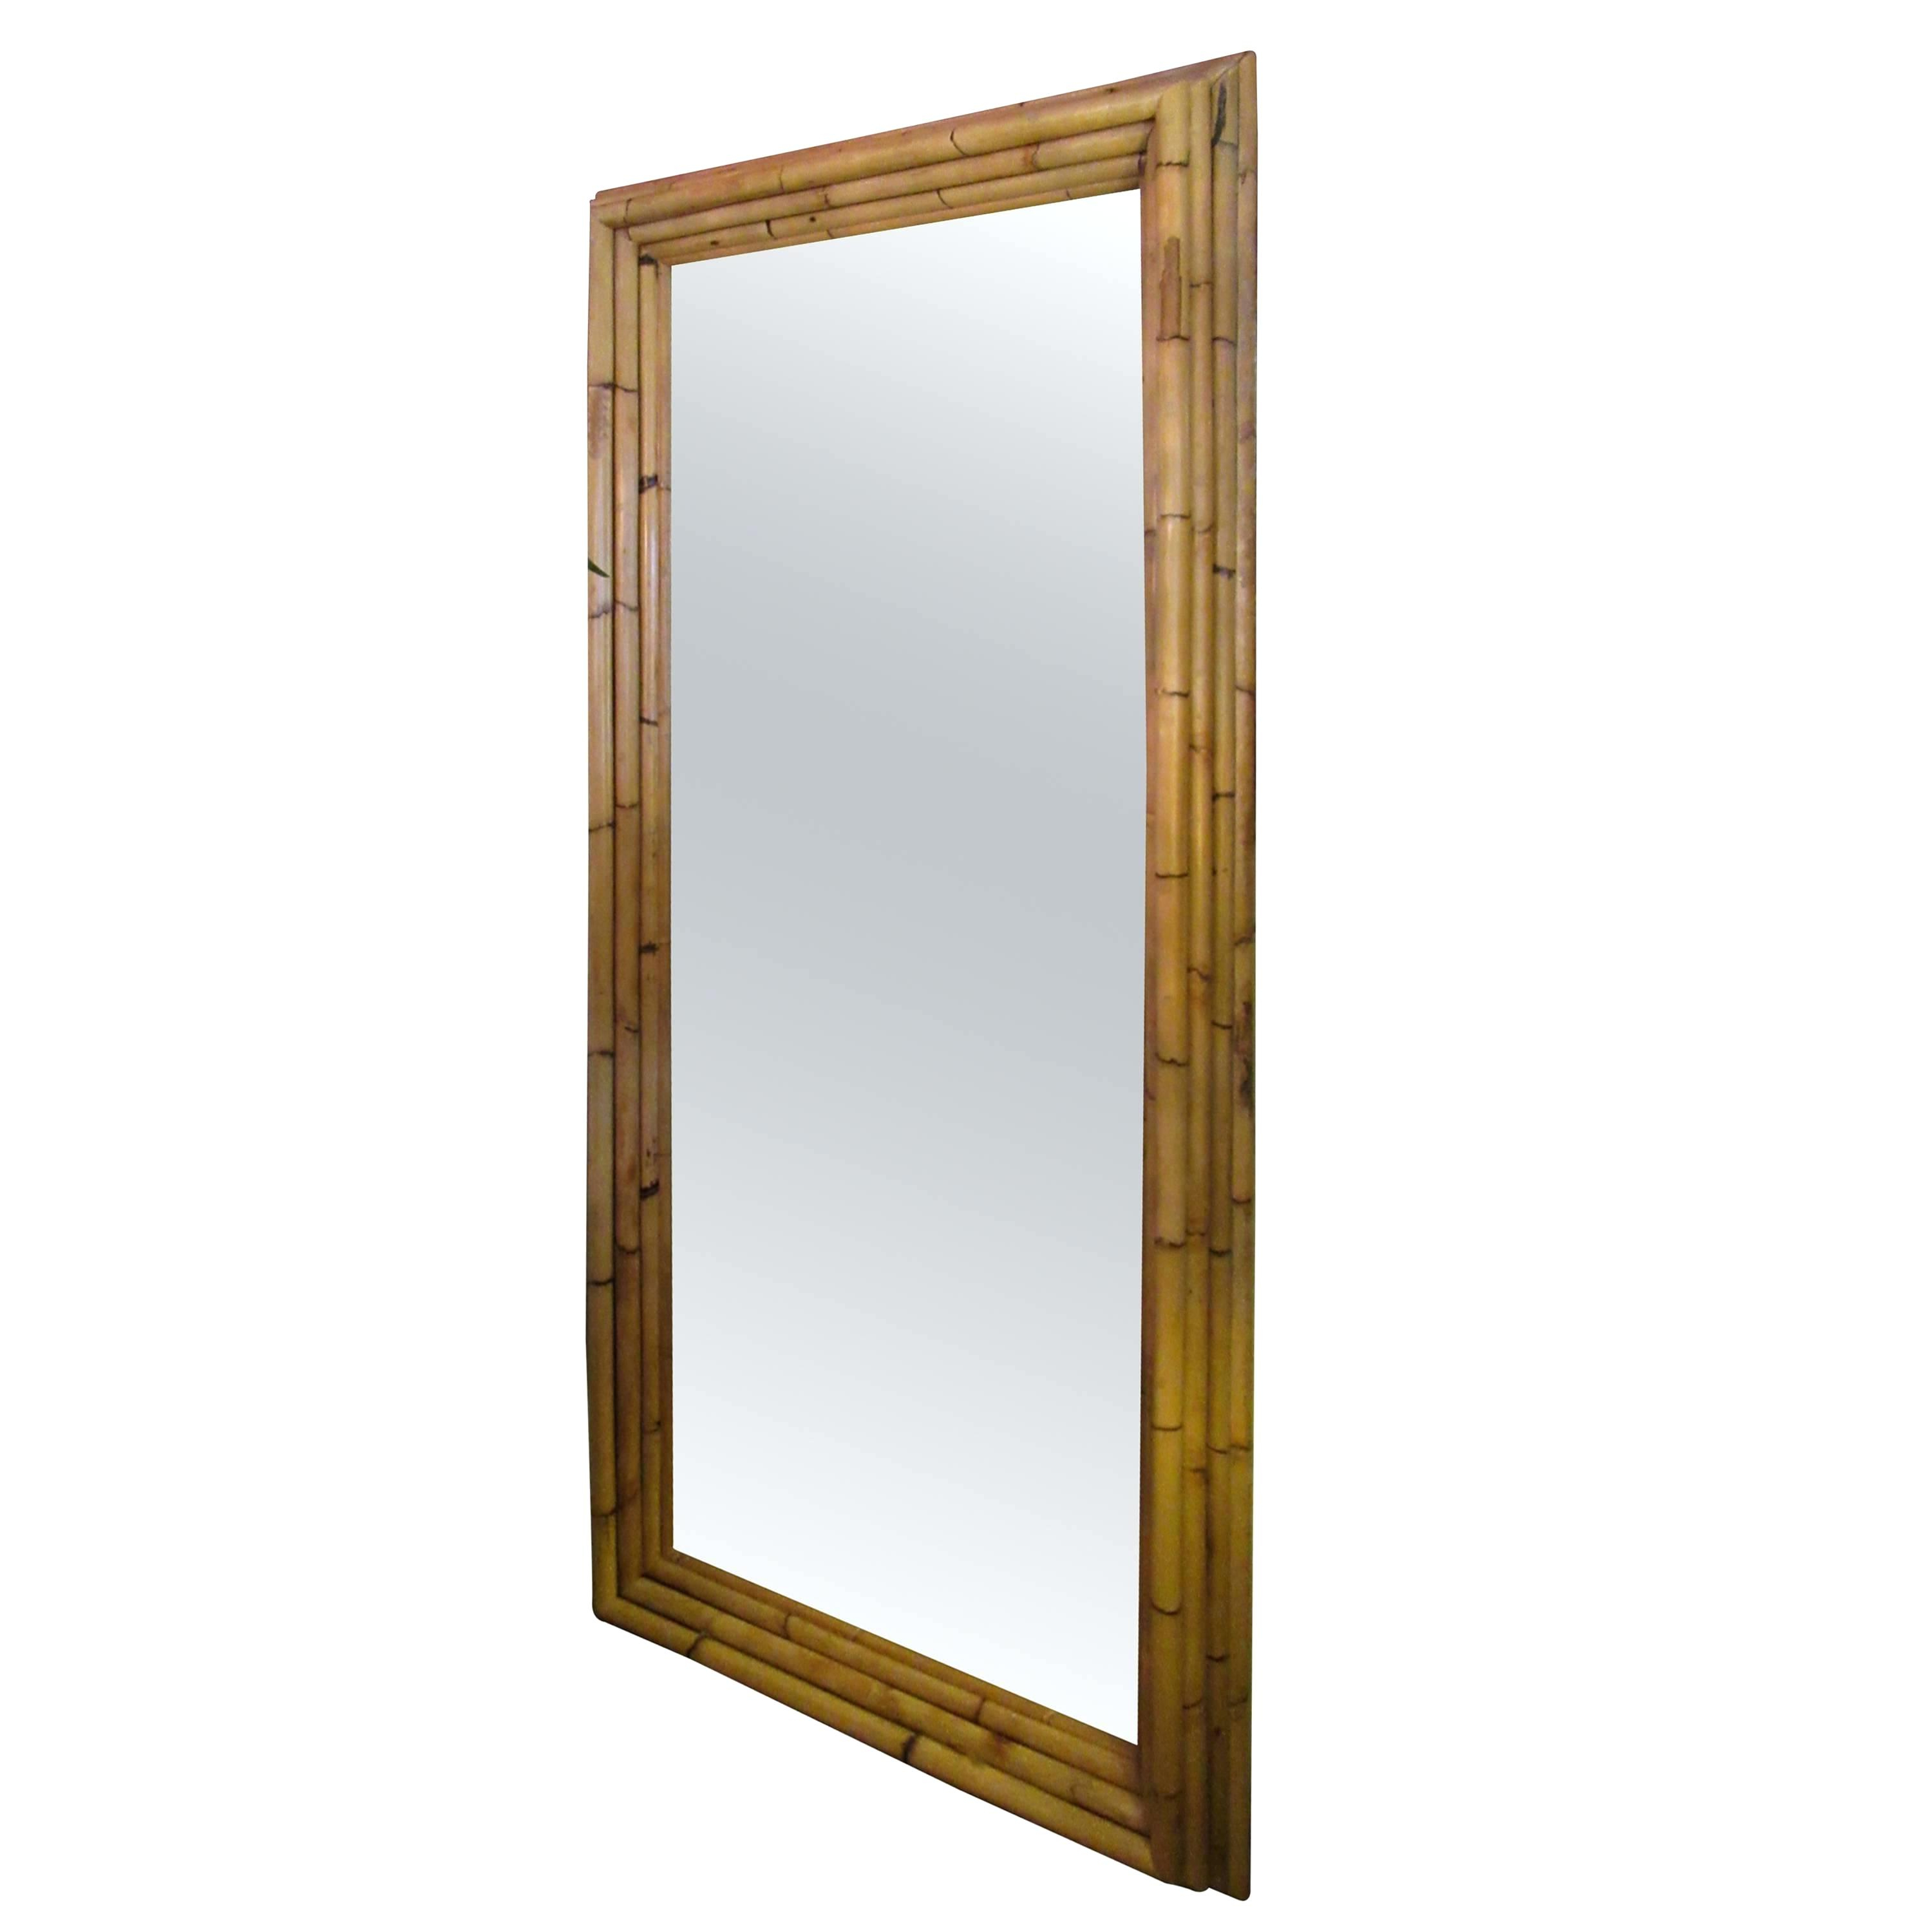 Widely Used Large Bamboo Wall Mirrors Dimensional Frame Full Length Mirror For With Regard To Bamboo Framed Wall Mirrors (View 20 of 20)